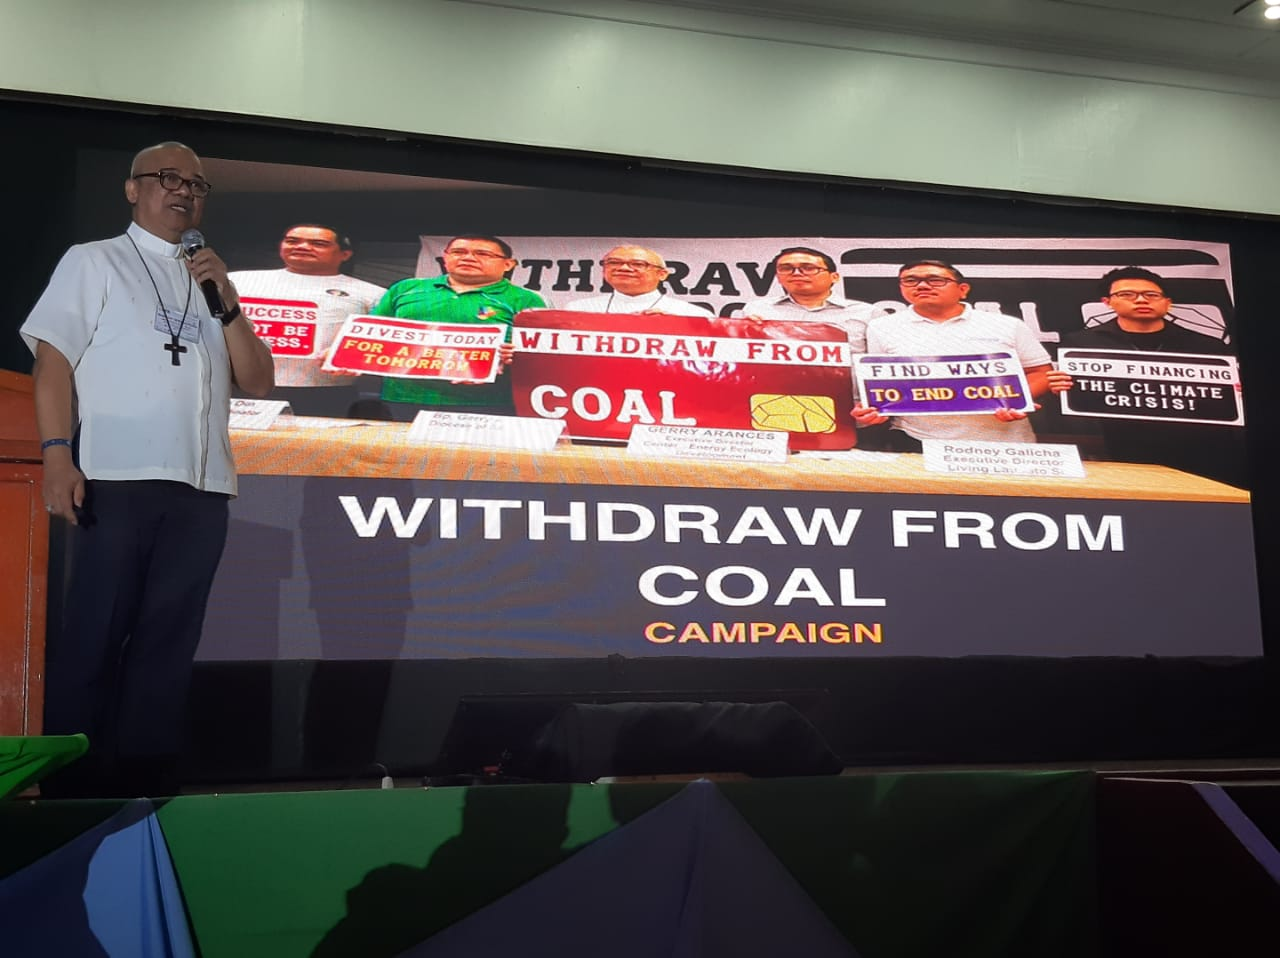 Church leader calls on banks to divest from coal